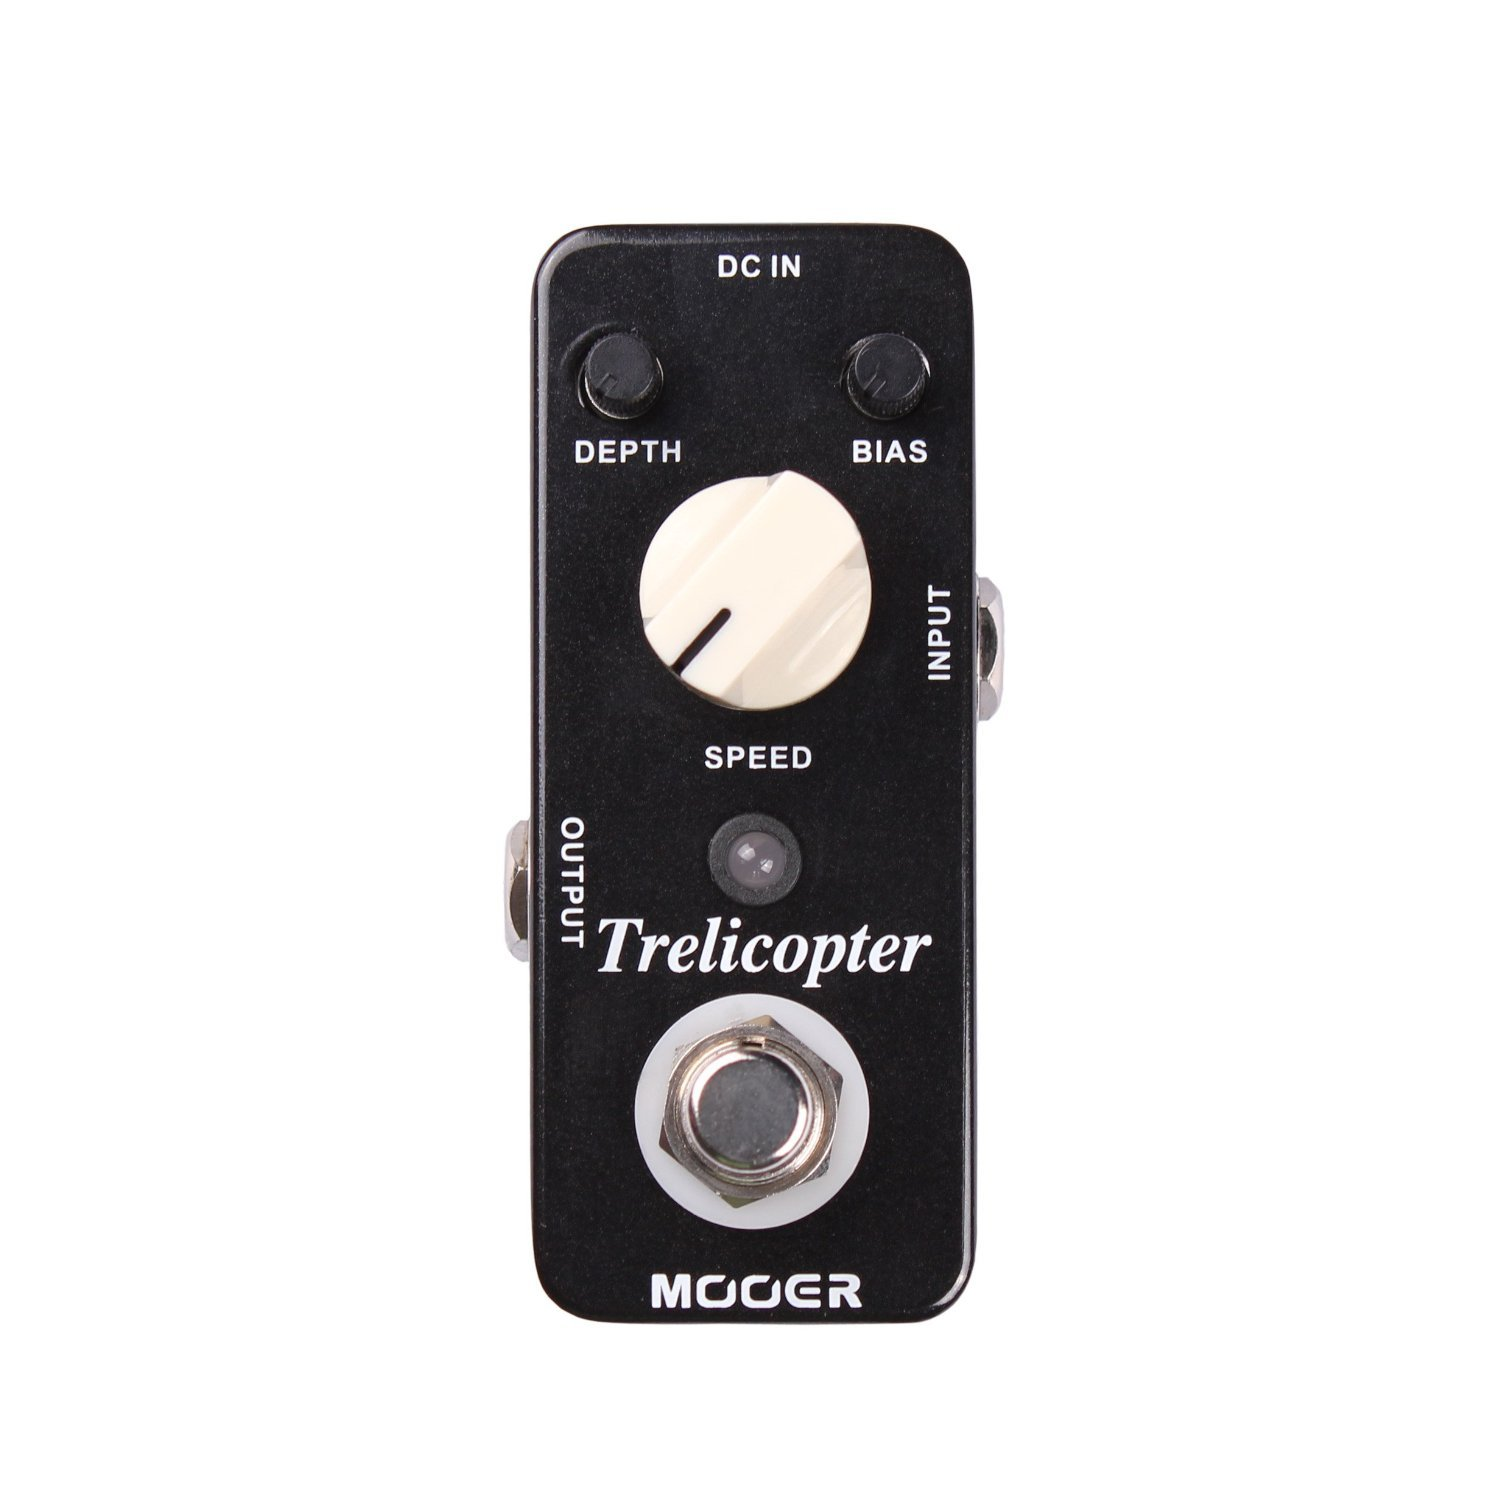 Trelicopter Tremolo Optical  Mooer Shim Verb Pédale Reverb 3 modes  Room spbague shimmer